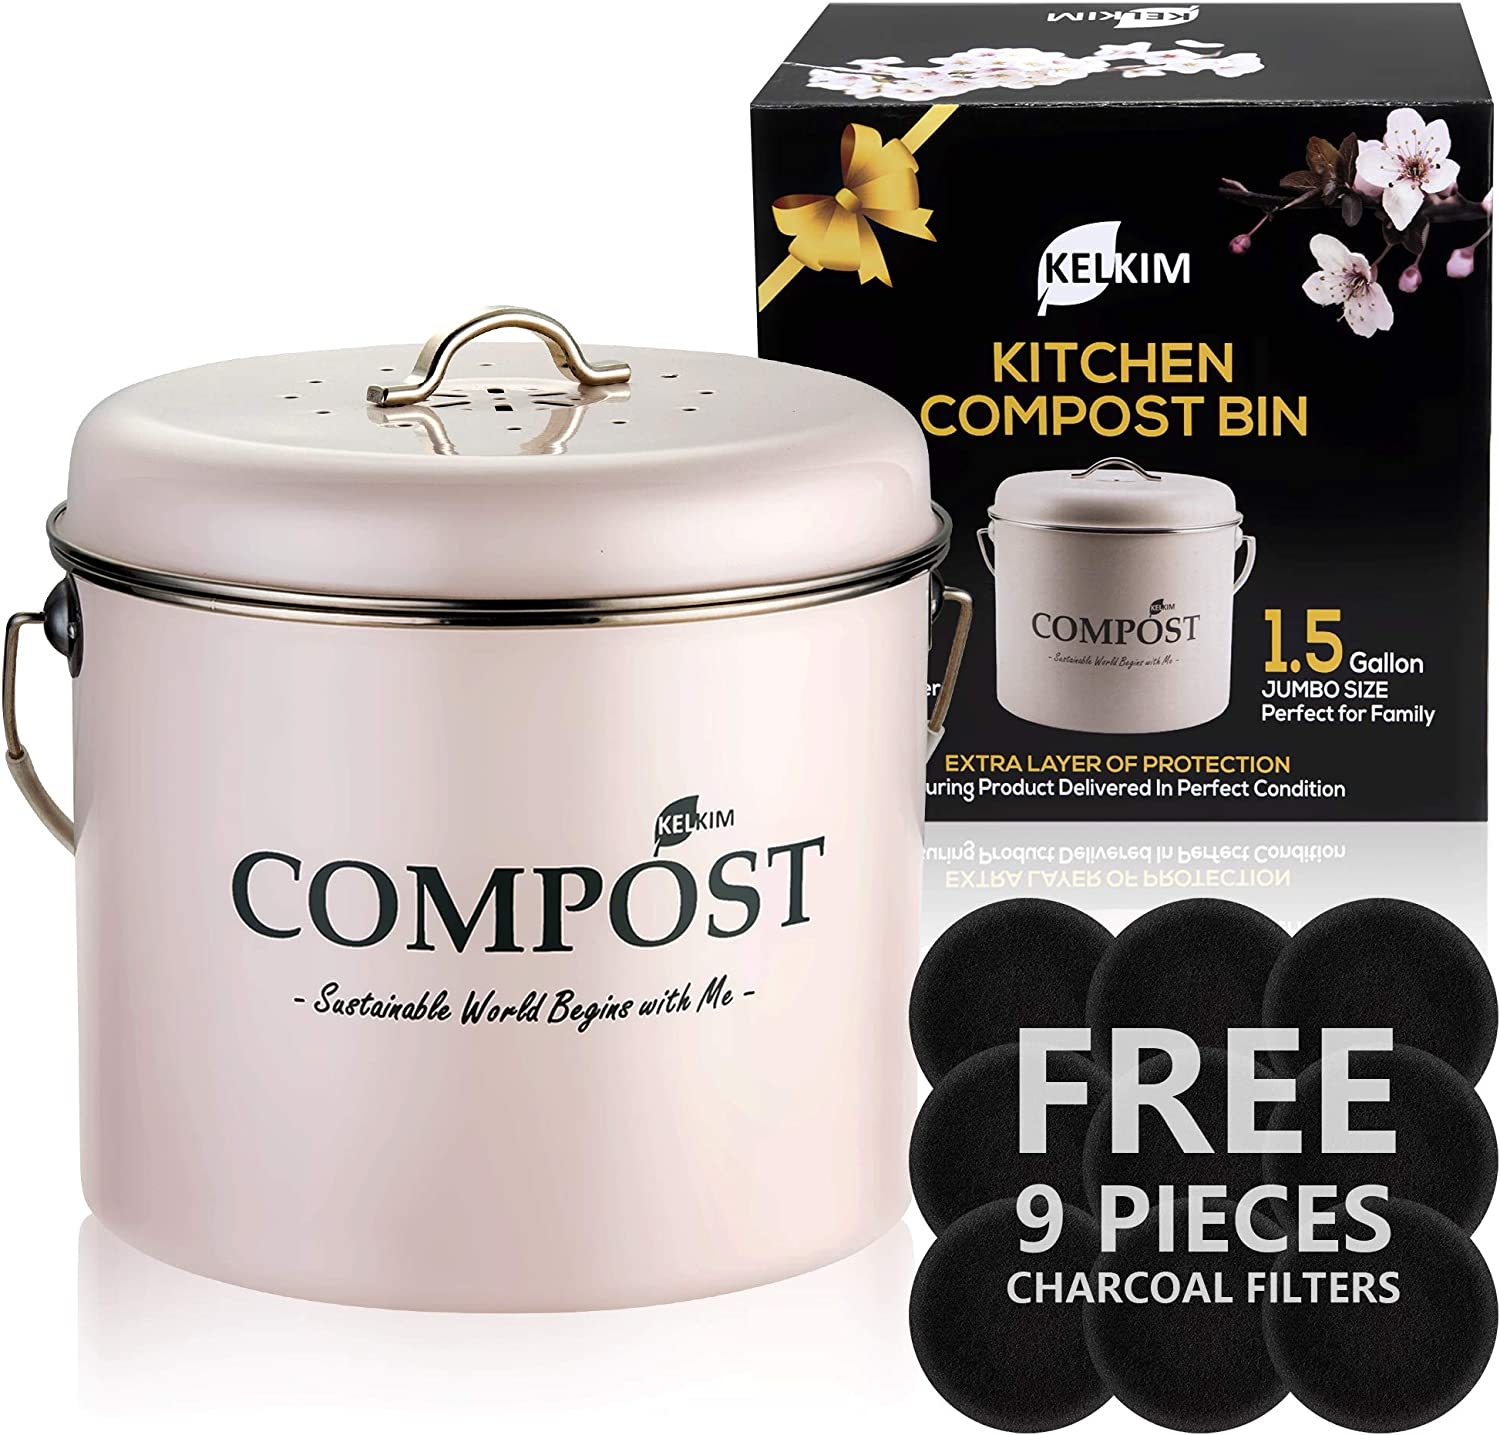 Kitchen Compost Bin 9 Bonus Charcoal Filters | Vintage Rustproof | Large Size 1.5 Gallon | Countertop Compost Container | Indoor Pink Recycling Caddy | Scraps Bucket Trash Pail with Airtight Lid